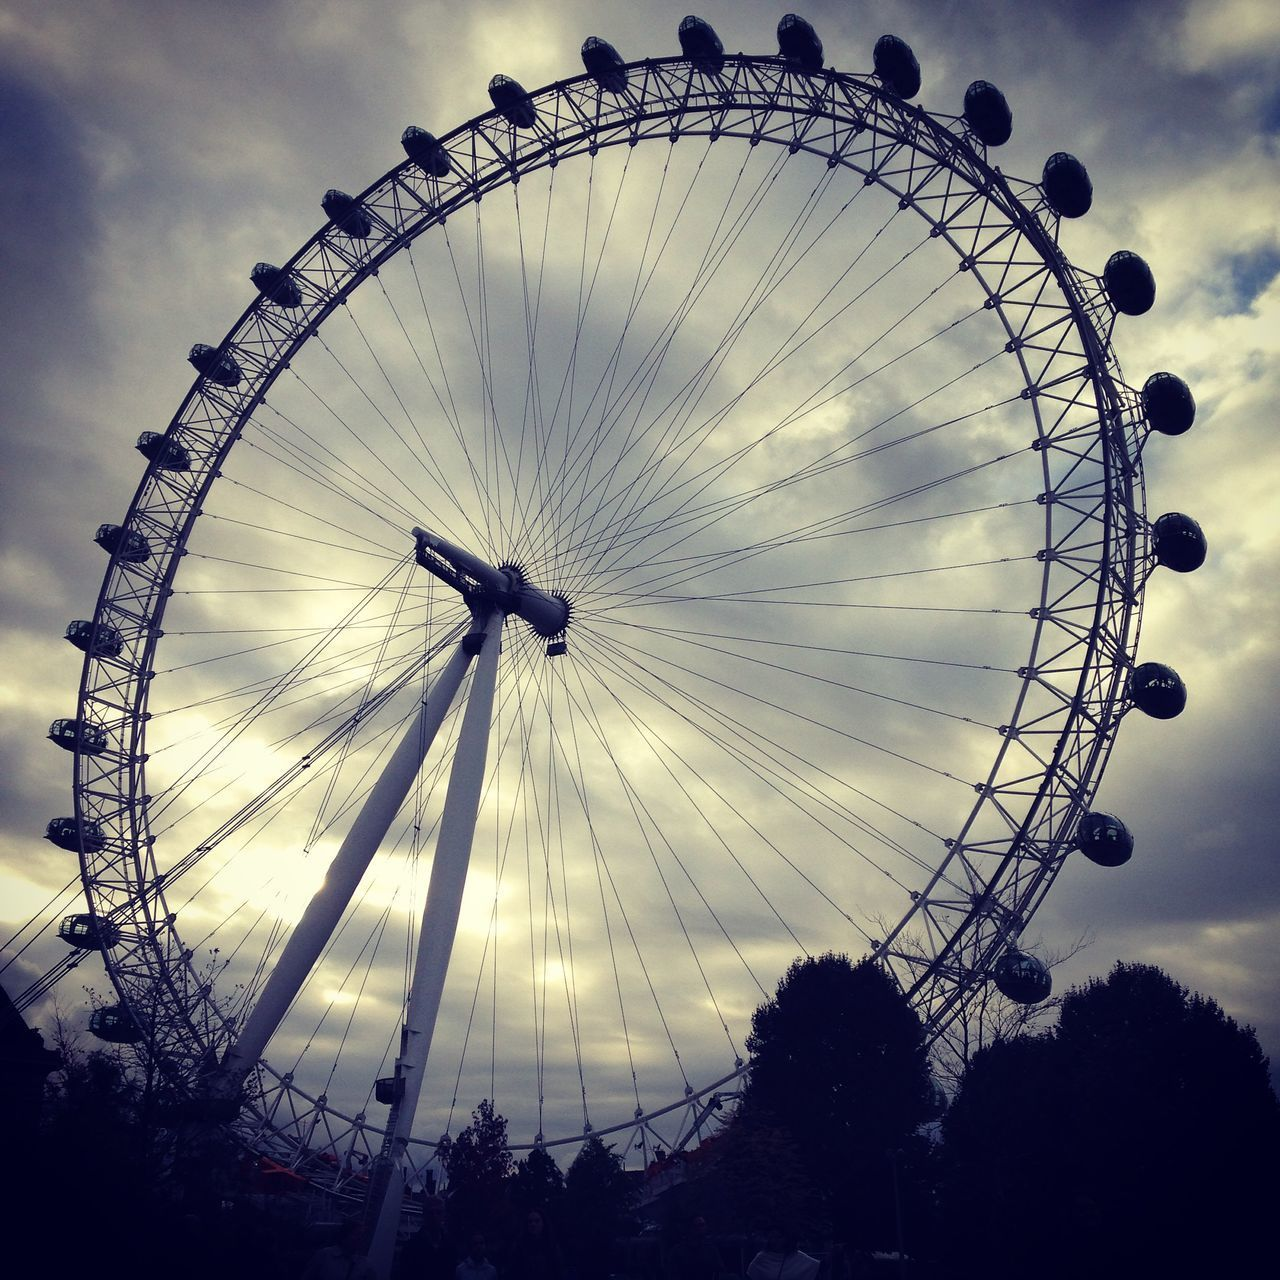 amusement park, ferris wheel, arts culture and entertainment, low angle view, sky, leisure activity, no people, outdoors, day, big wheel